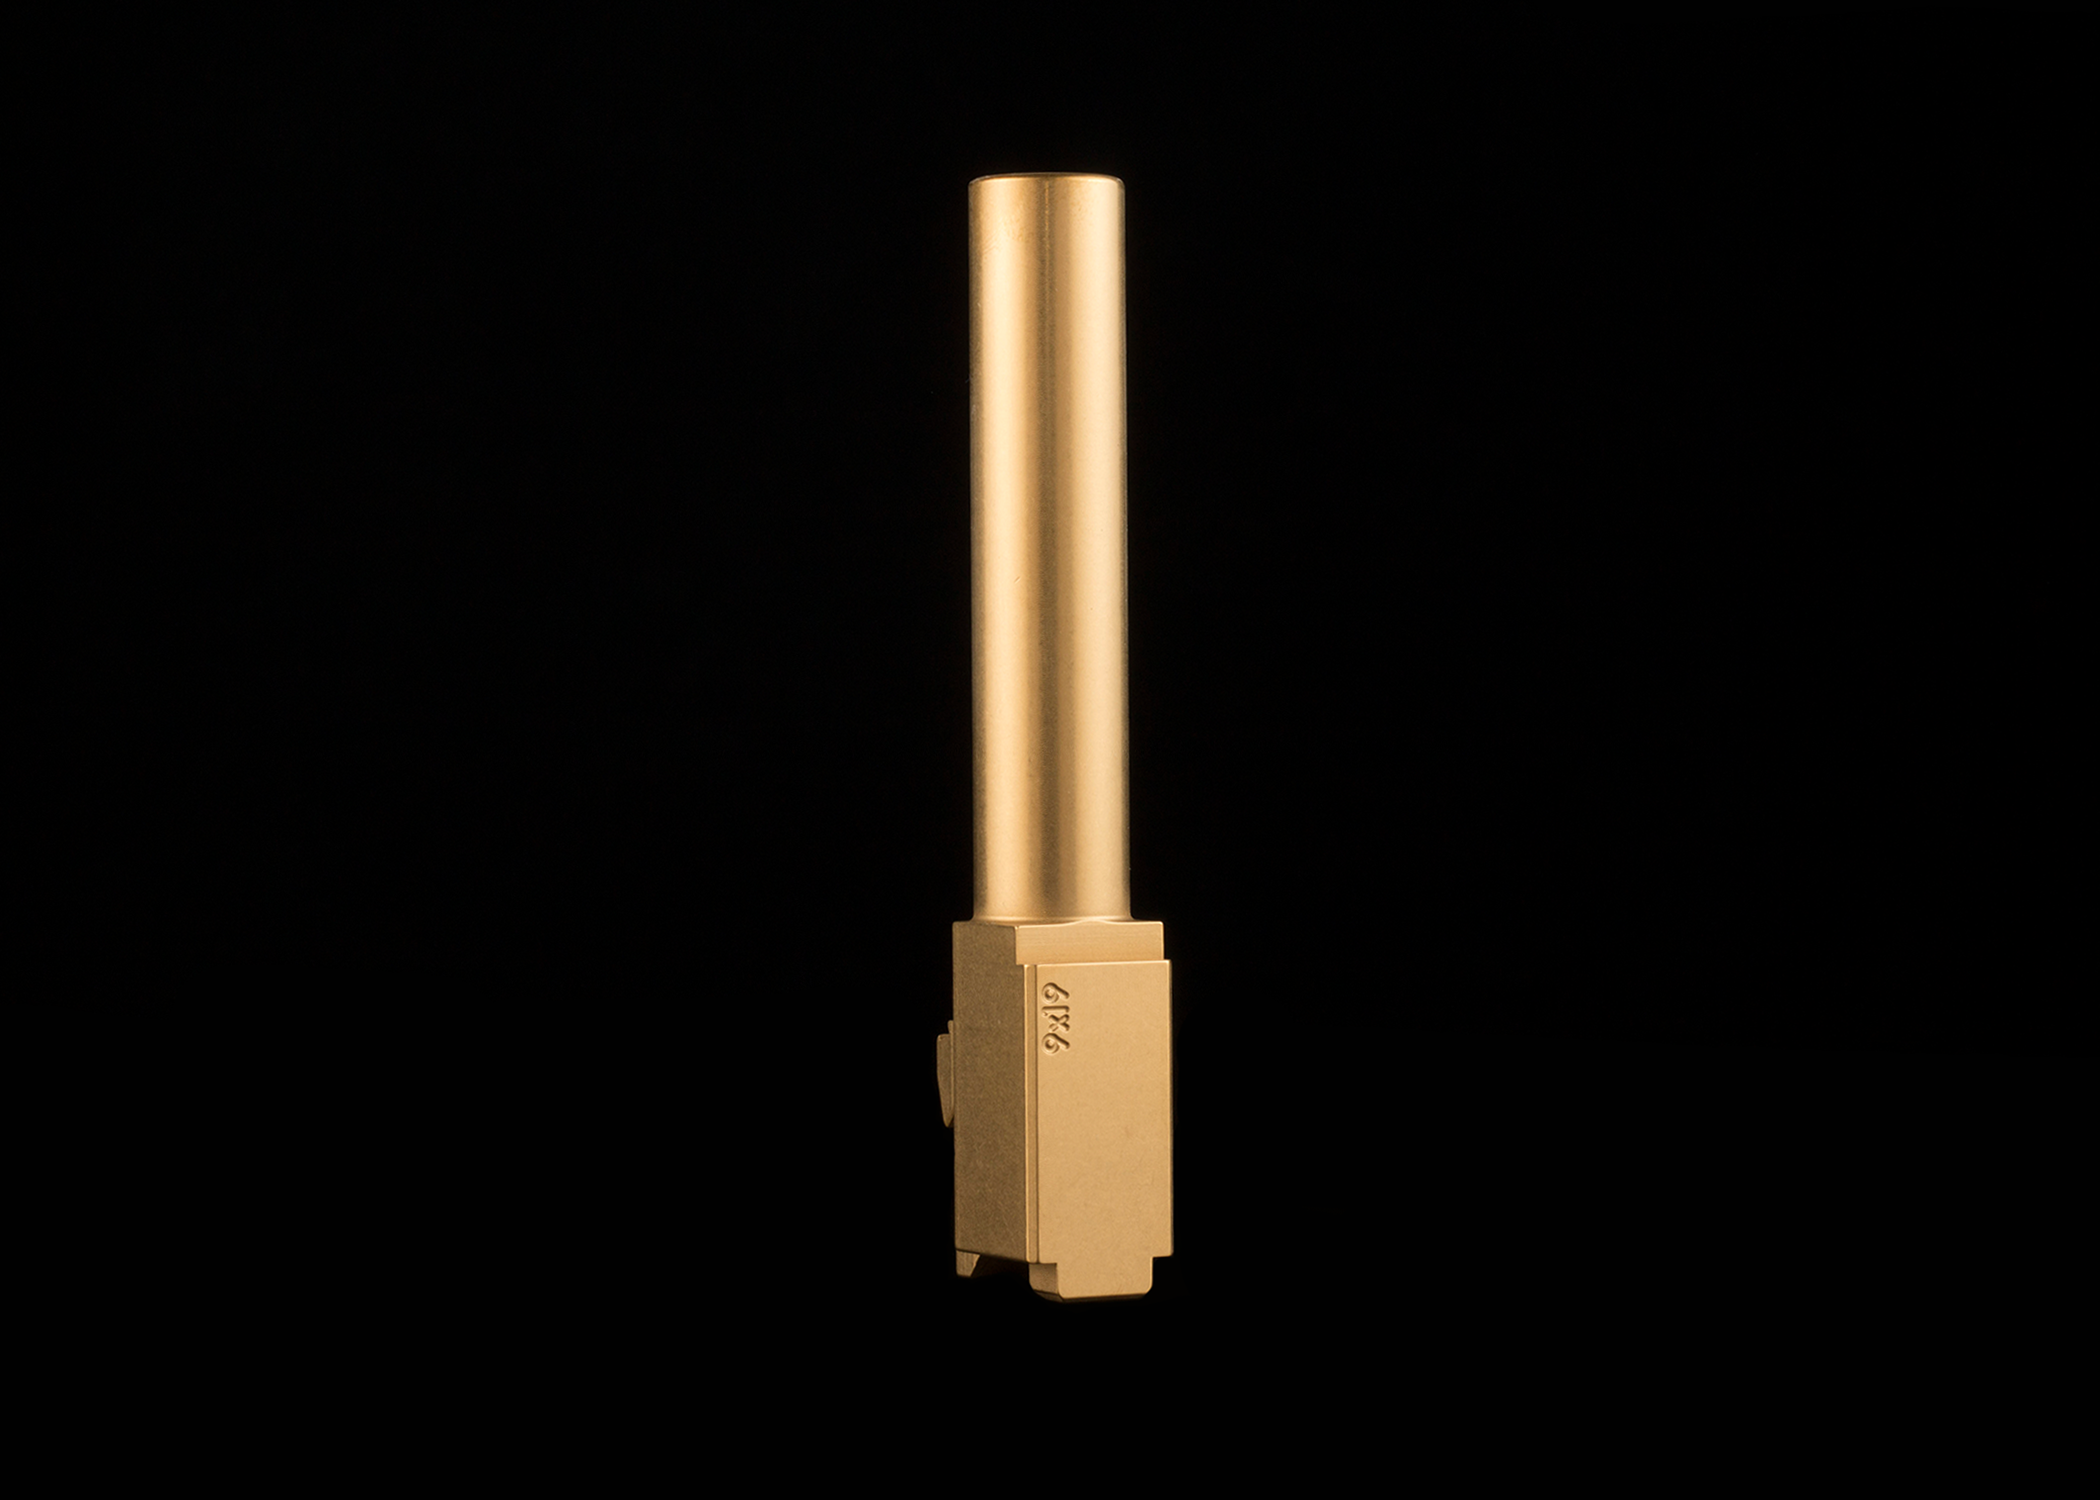 """Color:  gold   Thickness Range:  1 to 5 microns (~0.00004 to 0.0002"""")   Hardness:  2200 to 2400 Hv ( info on vickers hardness )   Maximum Operating Temperature:  600º C (1100º F)   Lubricity:  0.5 coefficient of friction   Wear Resistance:  Excellent"""